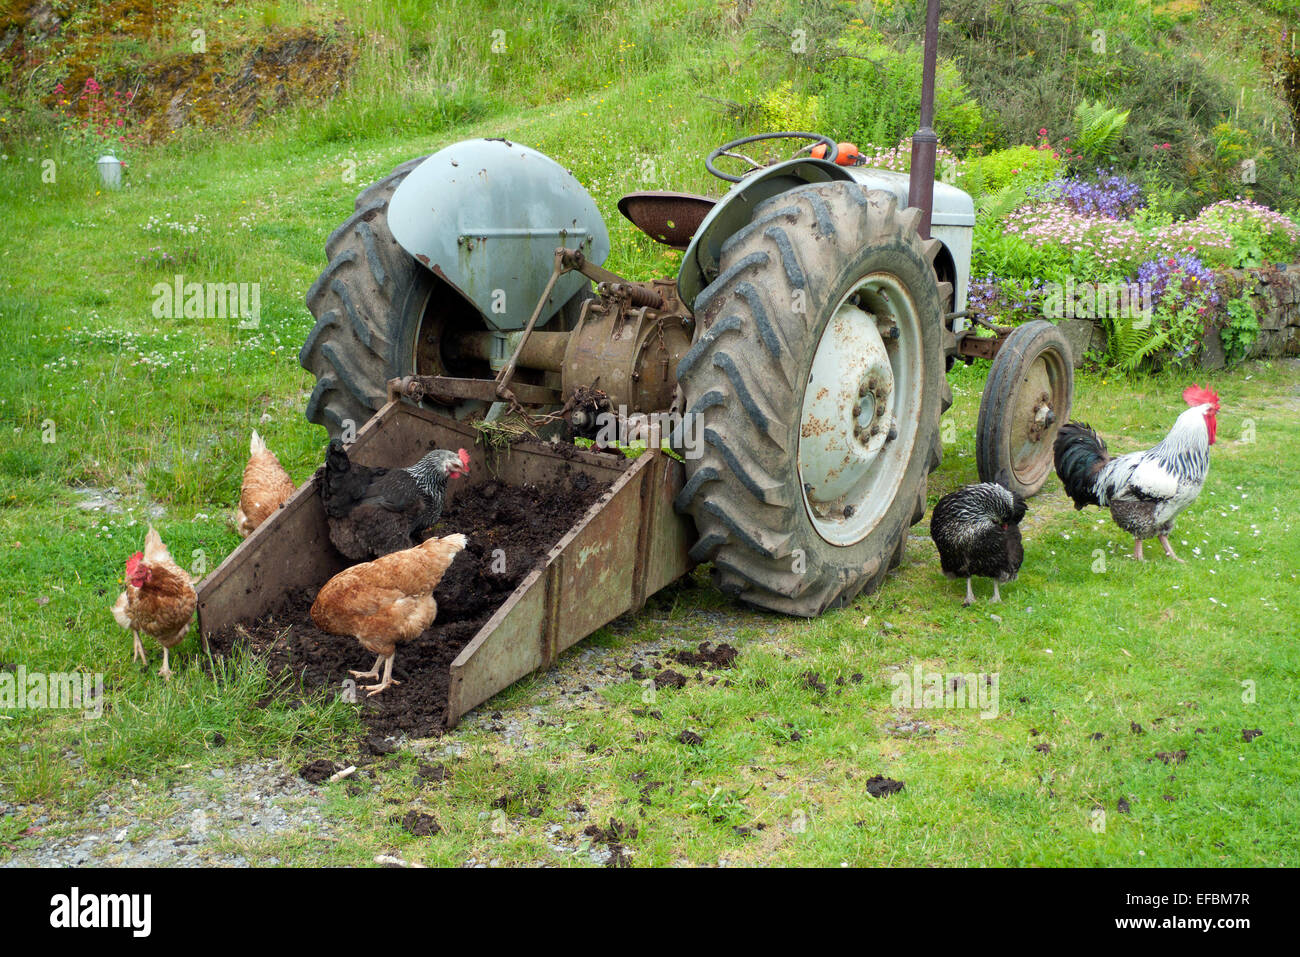 Free range hens and rooster pecking at manure on the back of a tractor on a smallholding in rural Wales UK  KATHY - Stock Image